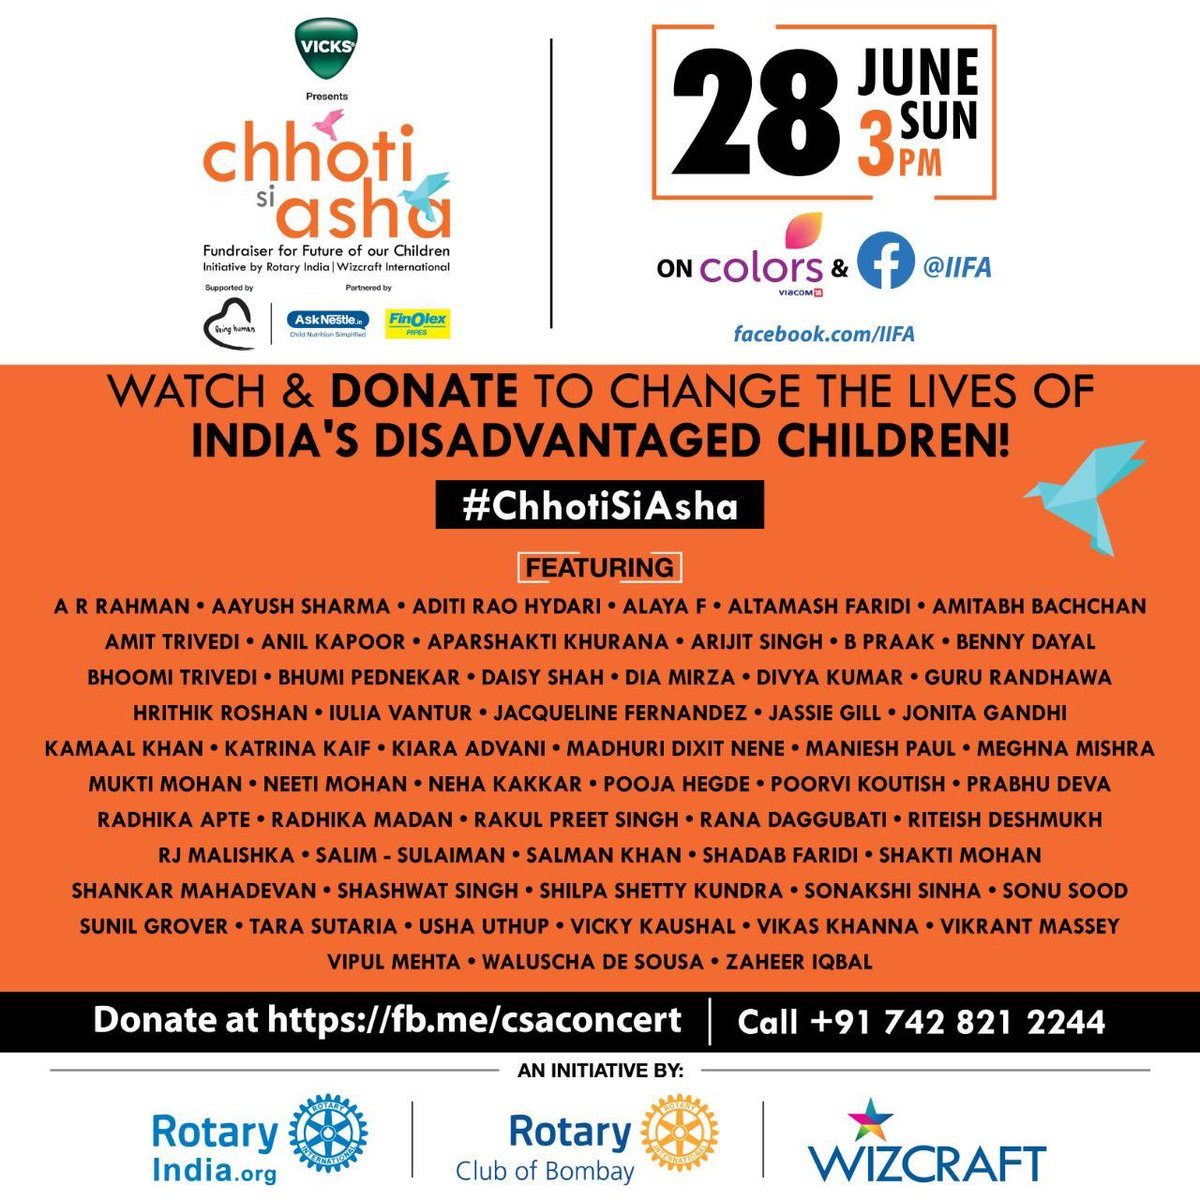 Together we can make a change! Watch #ChhotiSiAsha – A Fundraiser for the future of our children. On Sunday, 28th June on Colors and @iifa's Facebook page at 3pm.